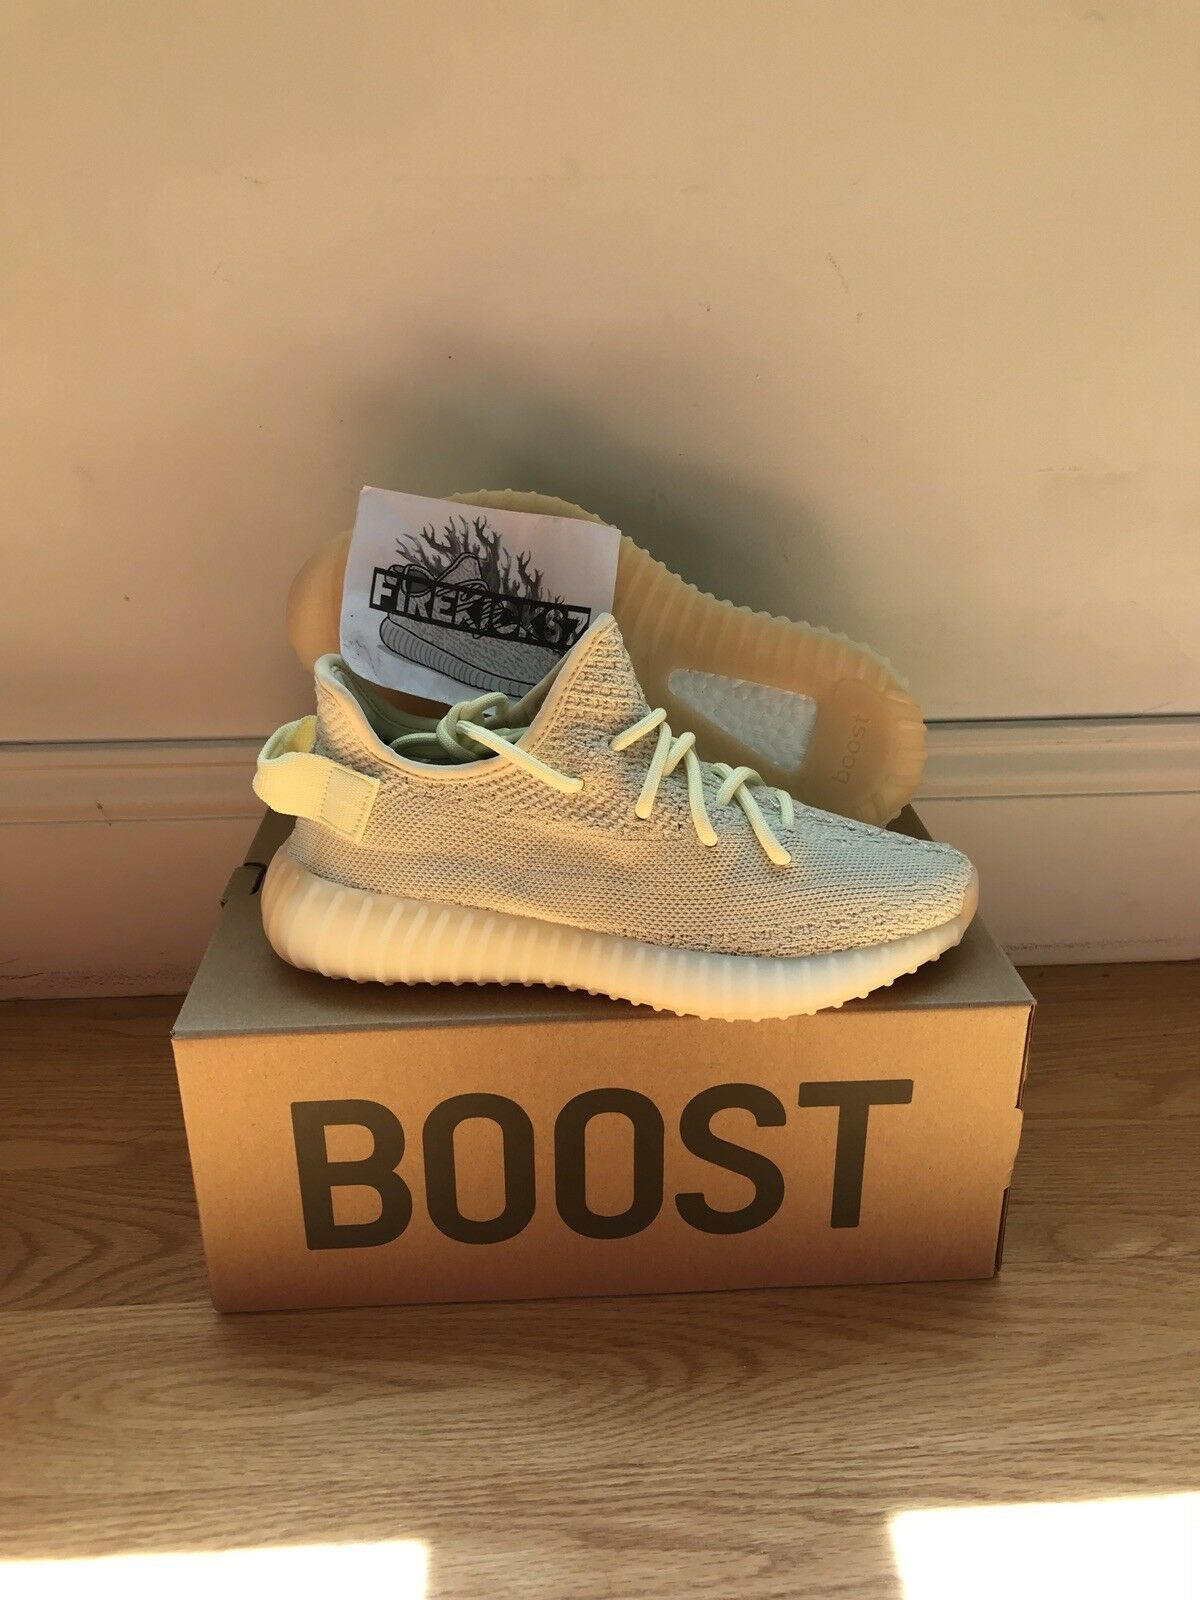 Adidas Yeezy Boost 350 V2 Butter F36980 - Cream Yellow Gum - Size 5 US